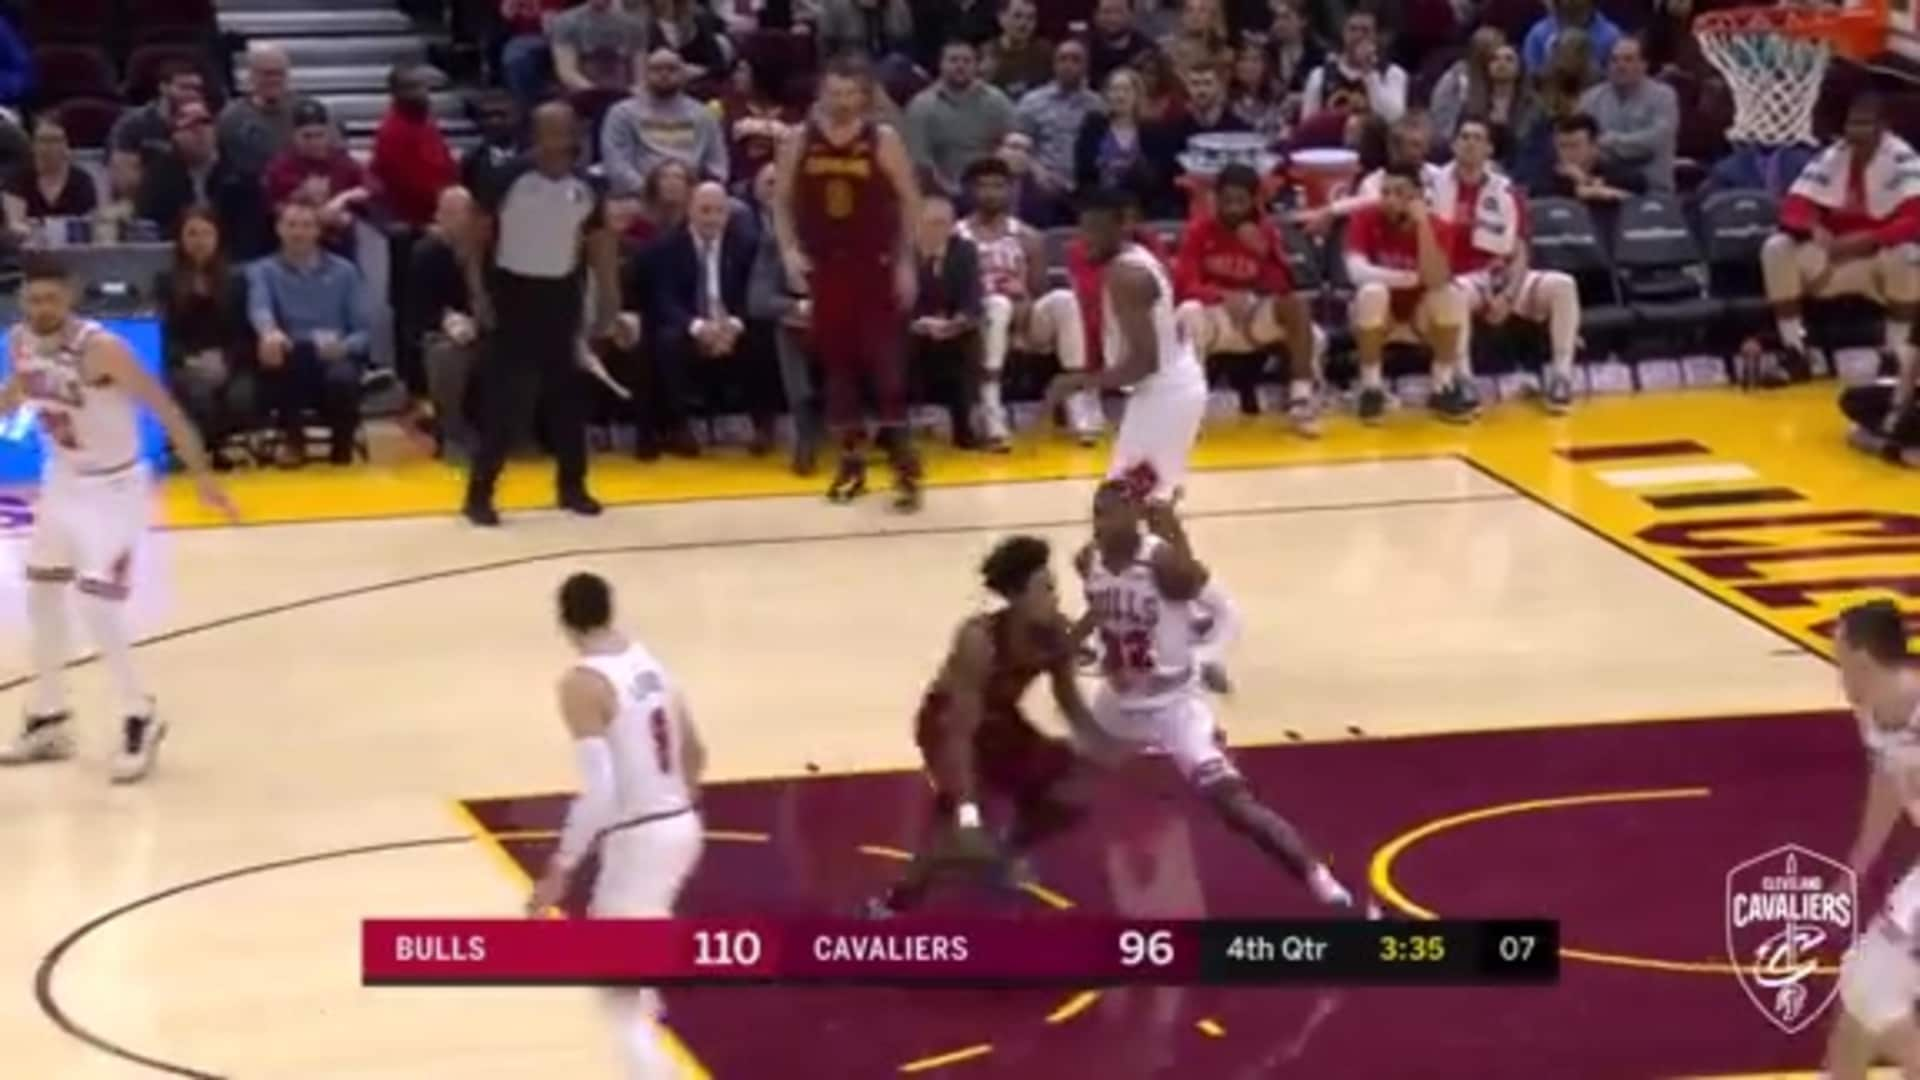 Sexton's No-Look Pass Sets up Nance's Basket